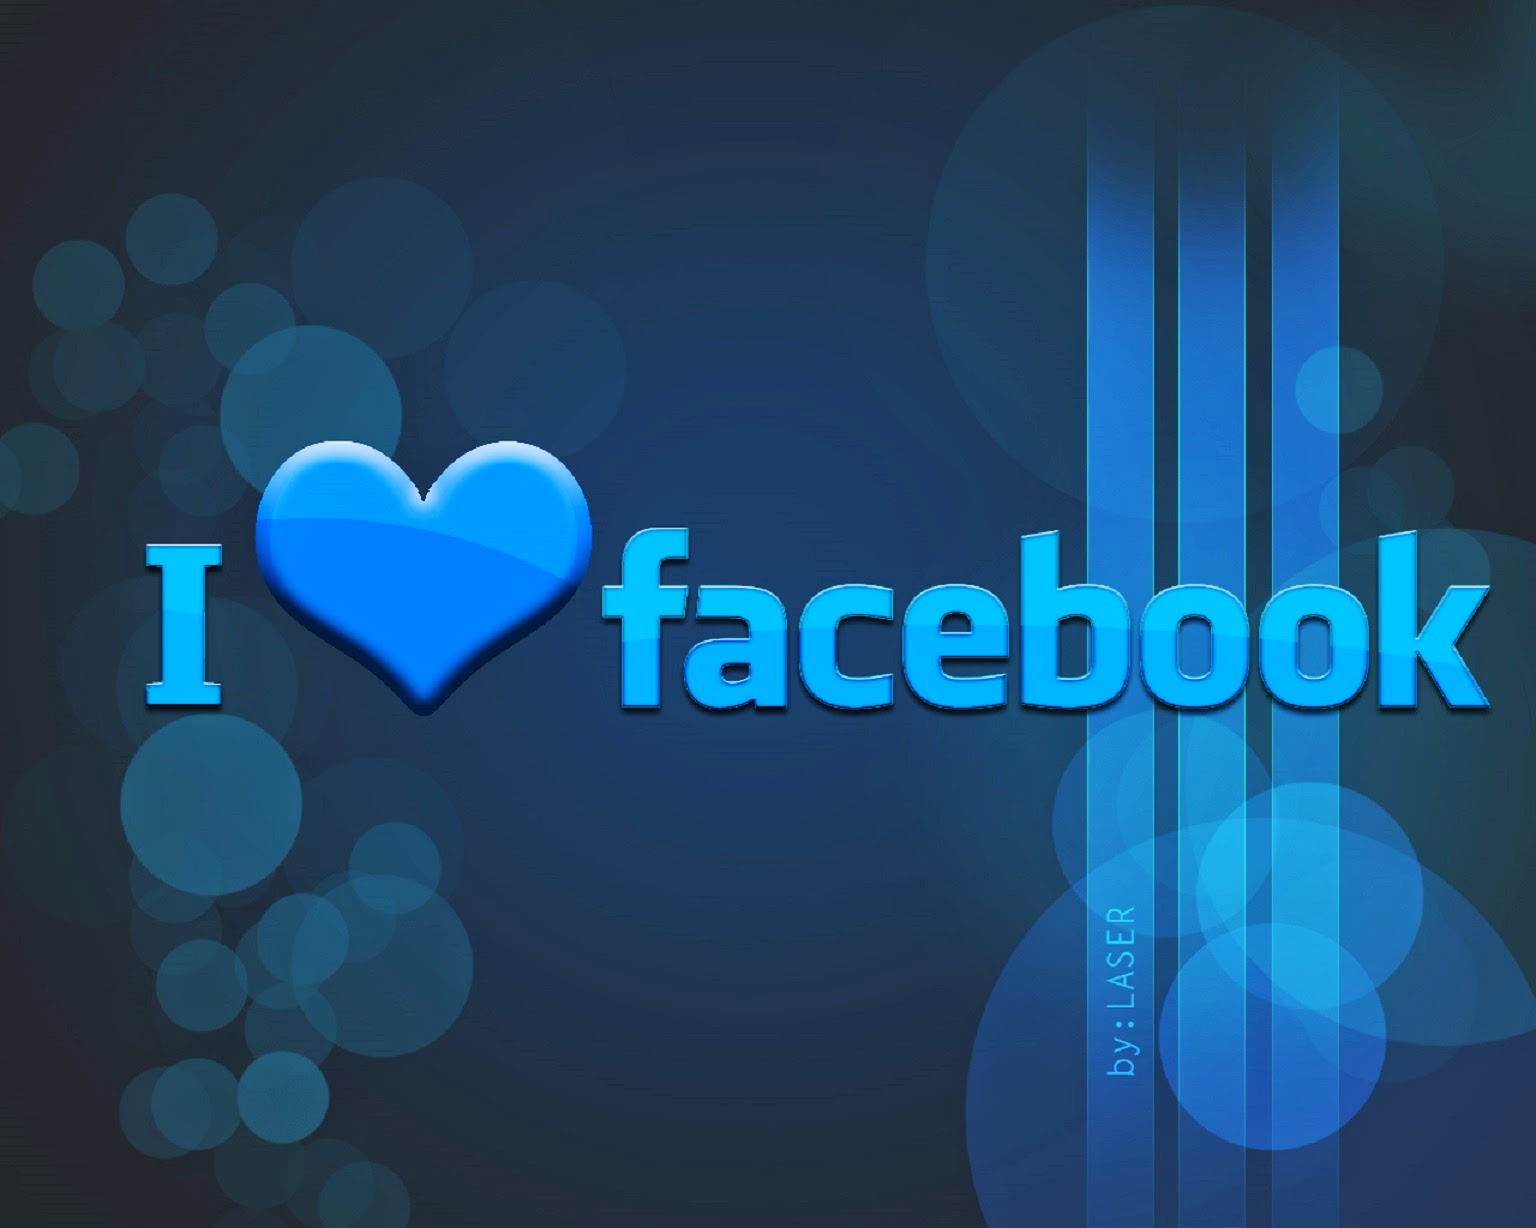 FB Lover HD Wallpaper